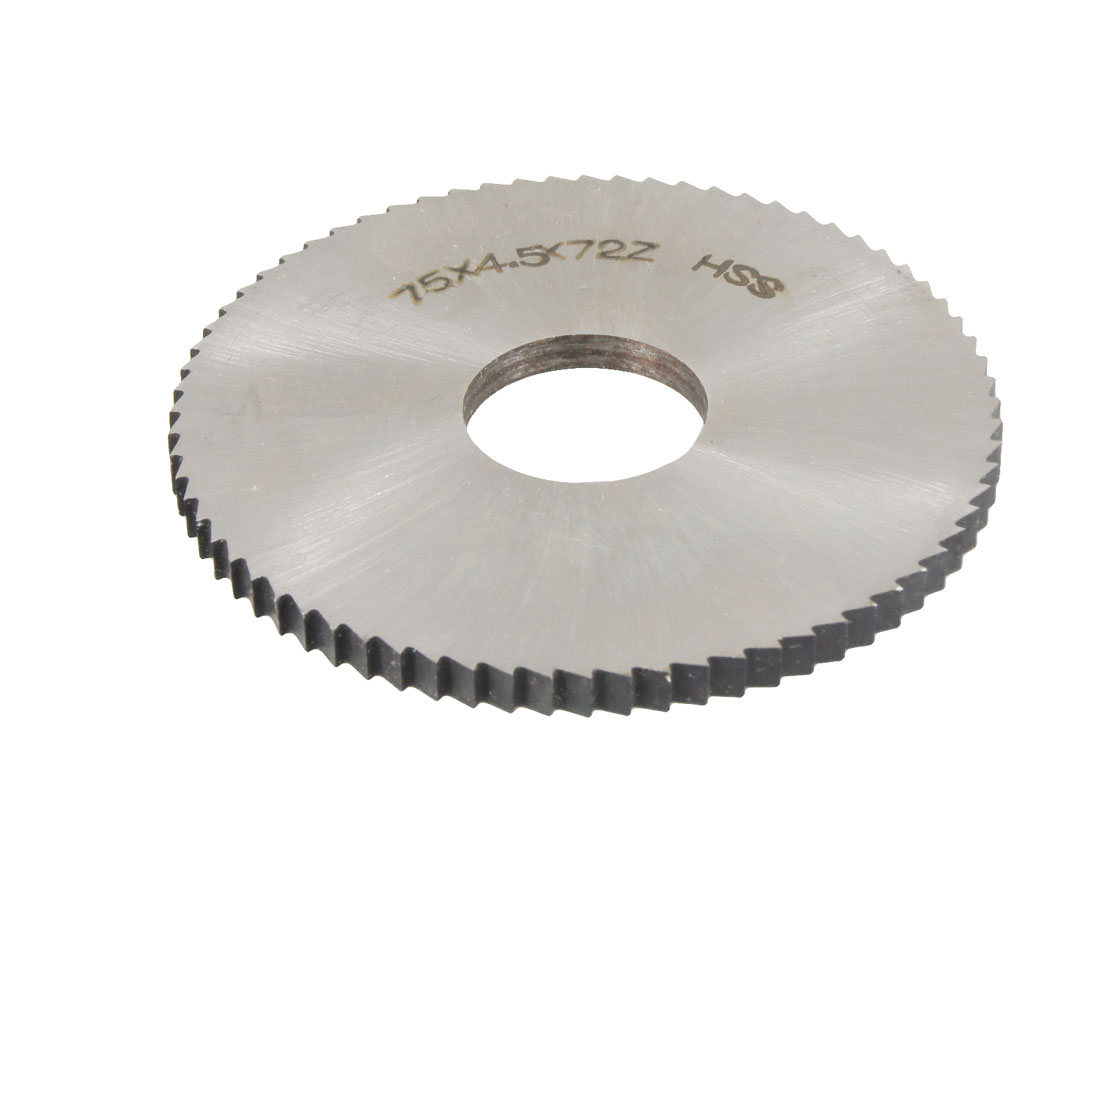 75mm x 4.5mm x 22mm High Speed Steel Milling Cutter 72T Slitting Saw Blade